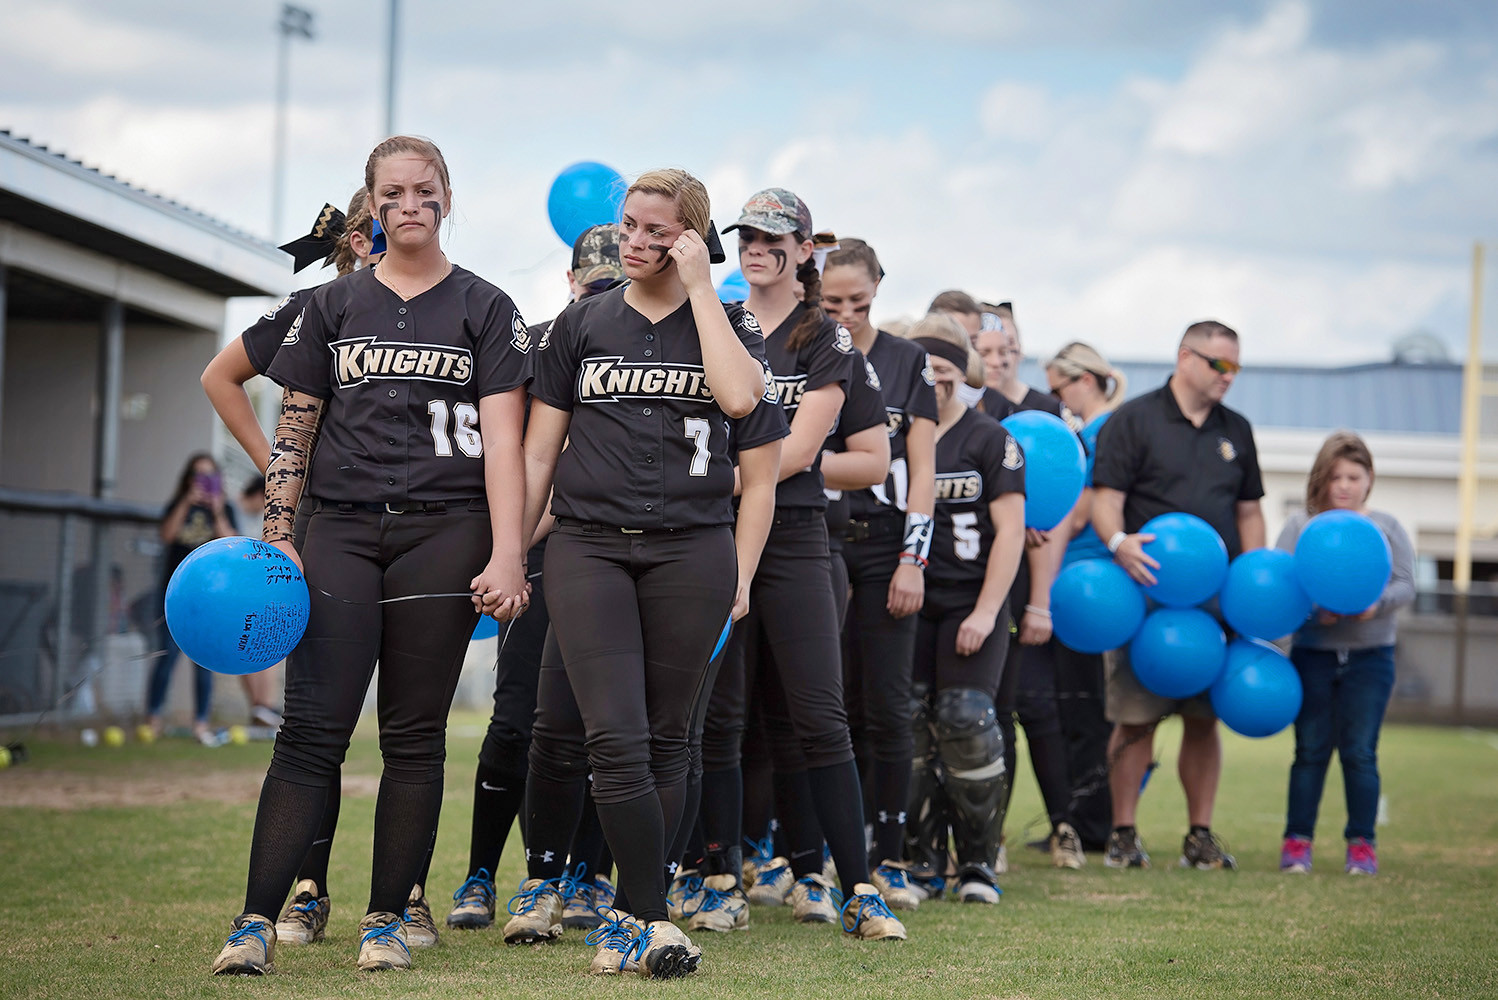 The Oakleaf High girls softball team paid tribute to long-time area baseball and softball coach Terry Thompson in Tuesday's season opener against Middleburg High School with balloons and a special tribute to the former Oakleaf High softball coach who passed away recently. Thompson was the brother of long-time Clay High baseball coach and an uncle to Oakleaf High softball coach Christine Thompson.